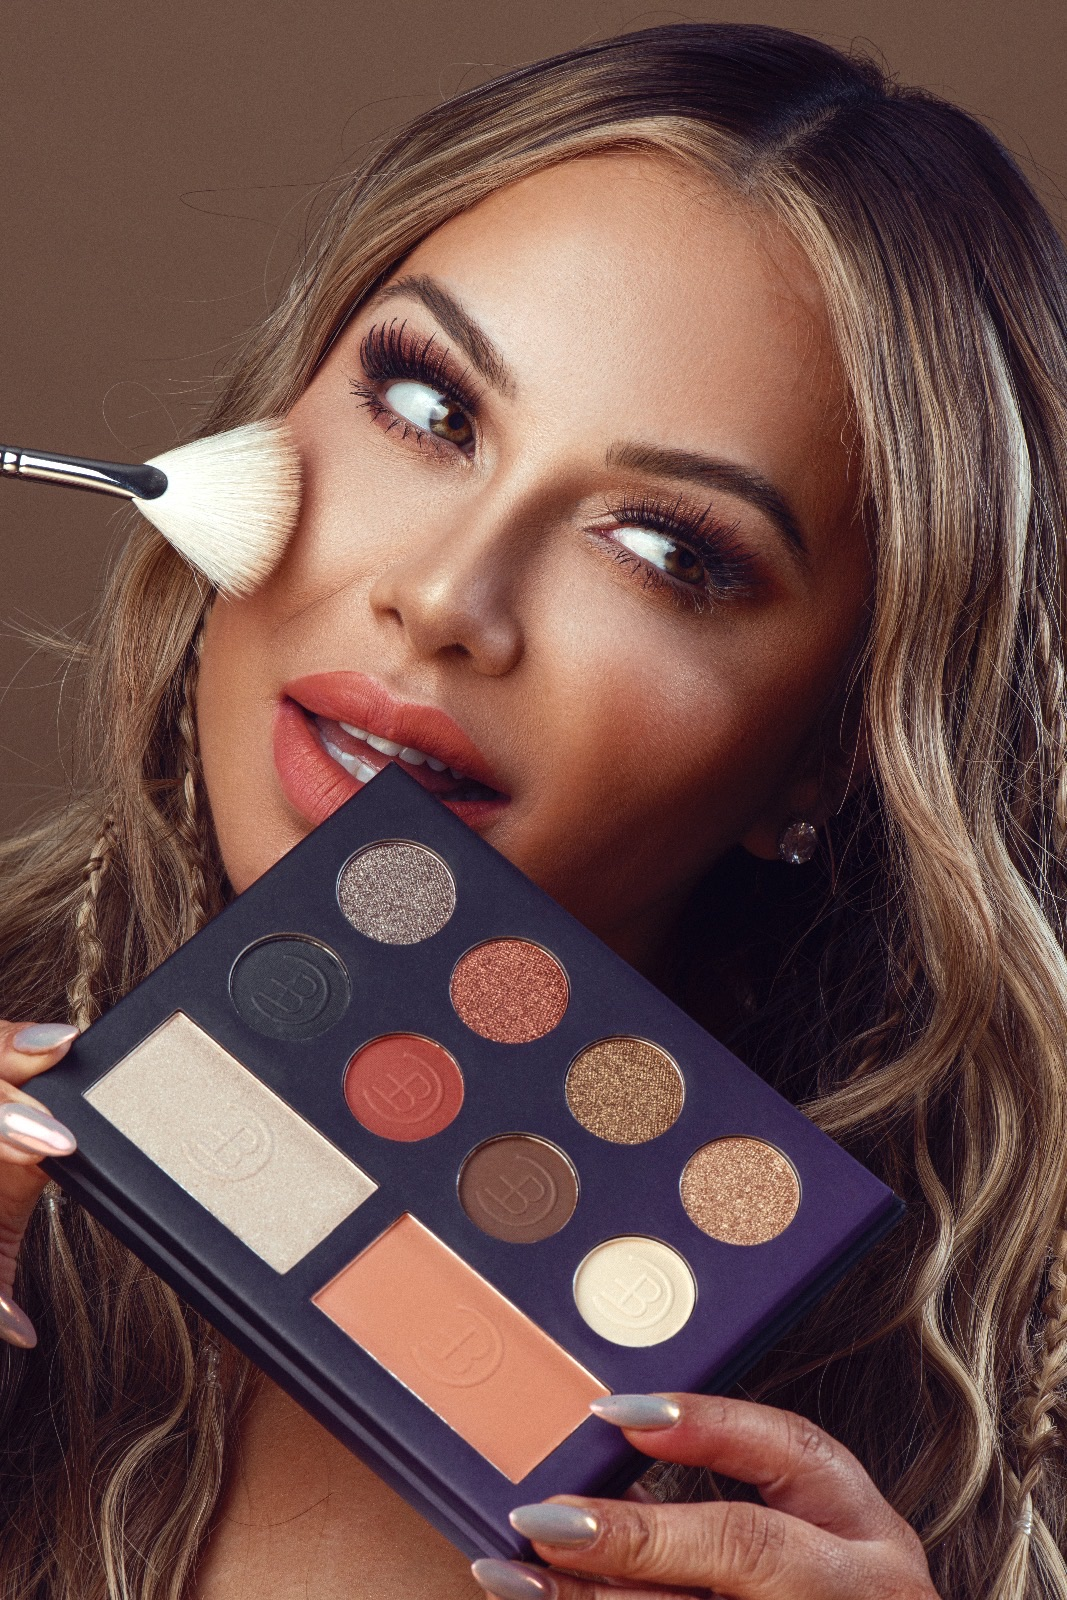 Chiquis makeup - DO NOT REUSE